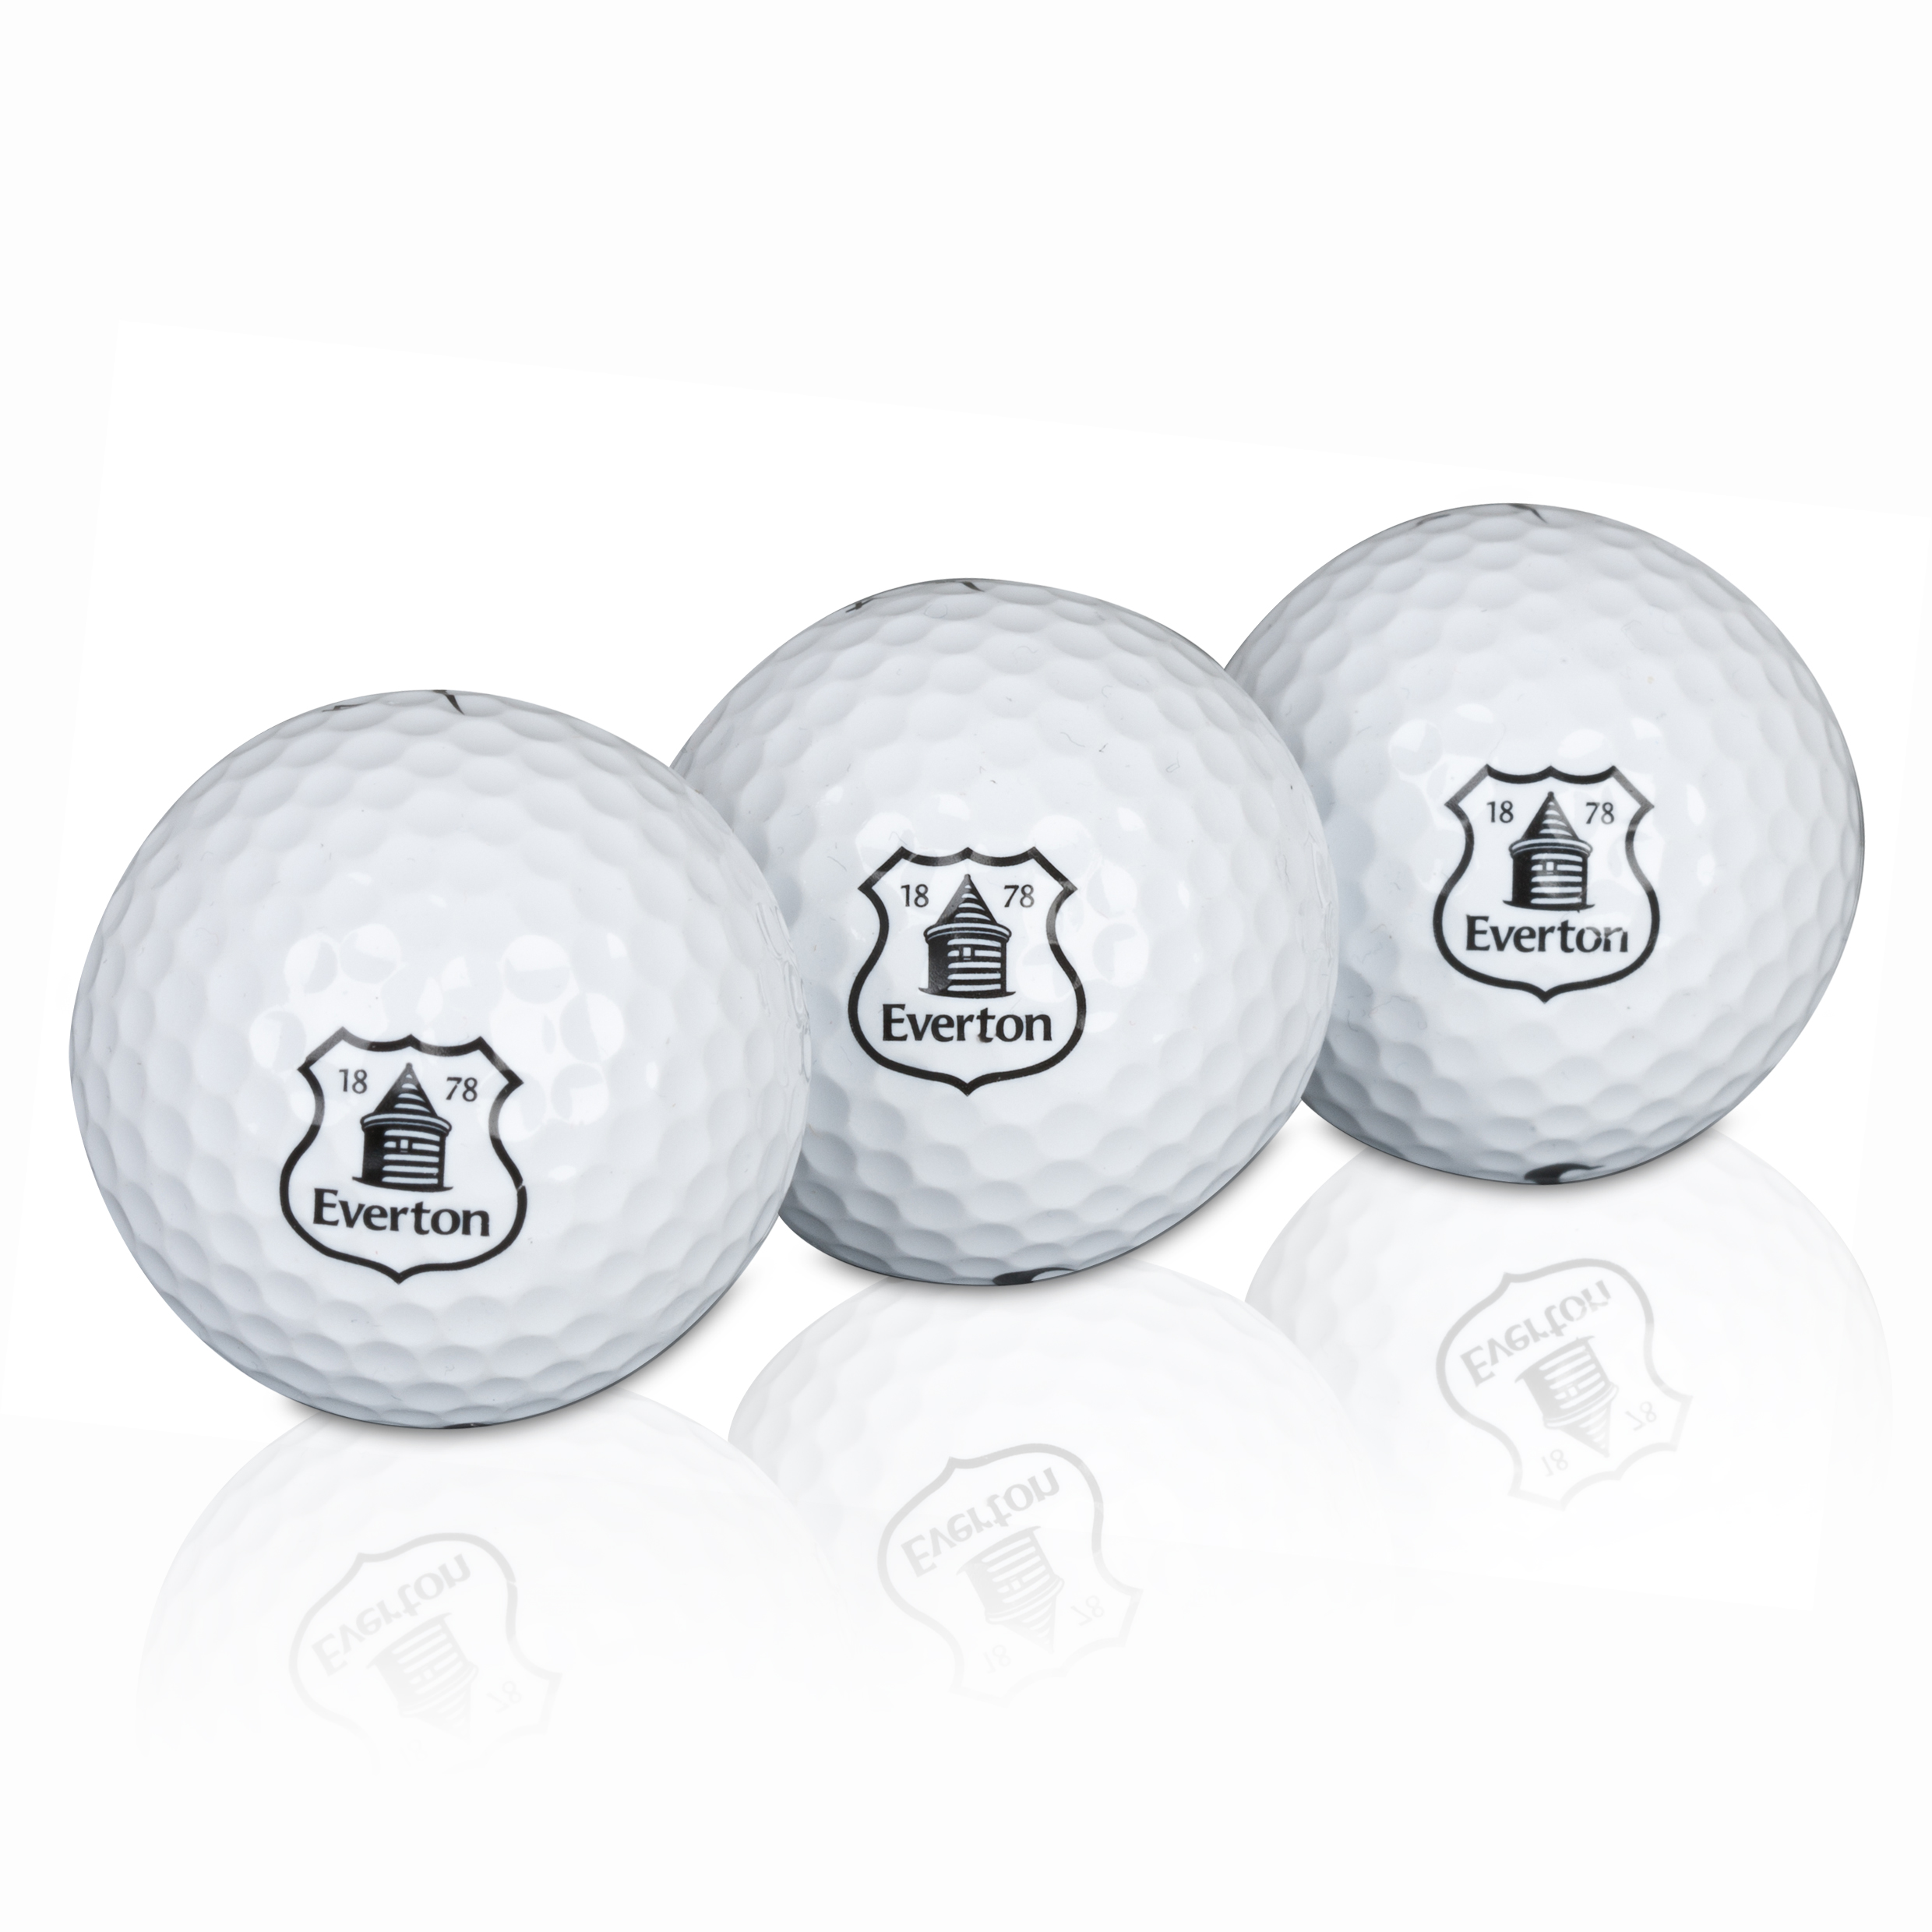 Everton Golf Balls 3 Pack